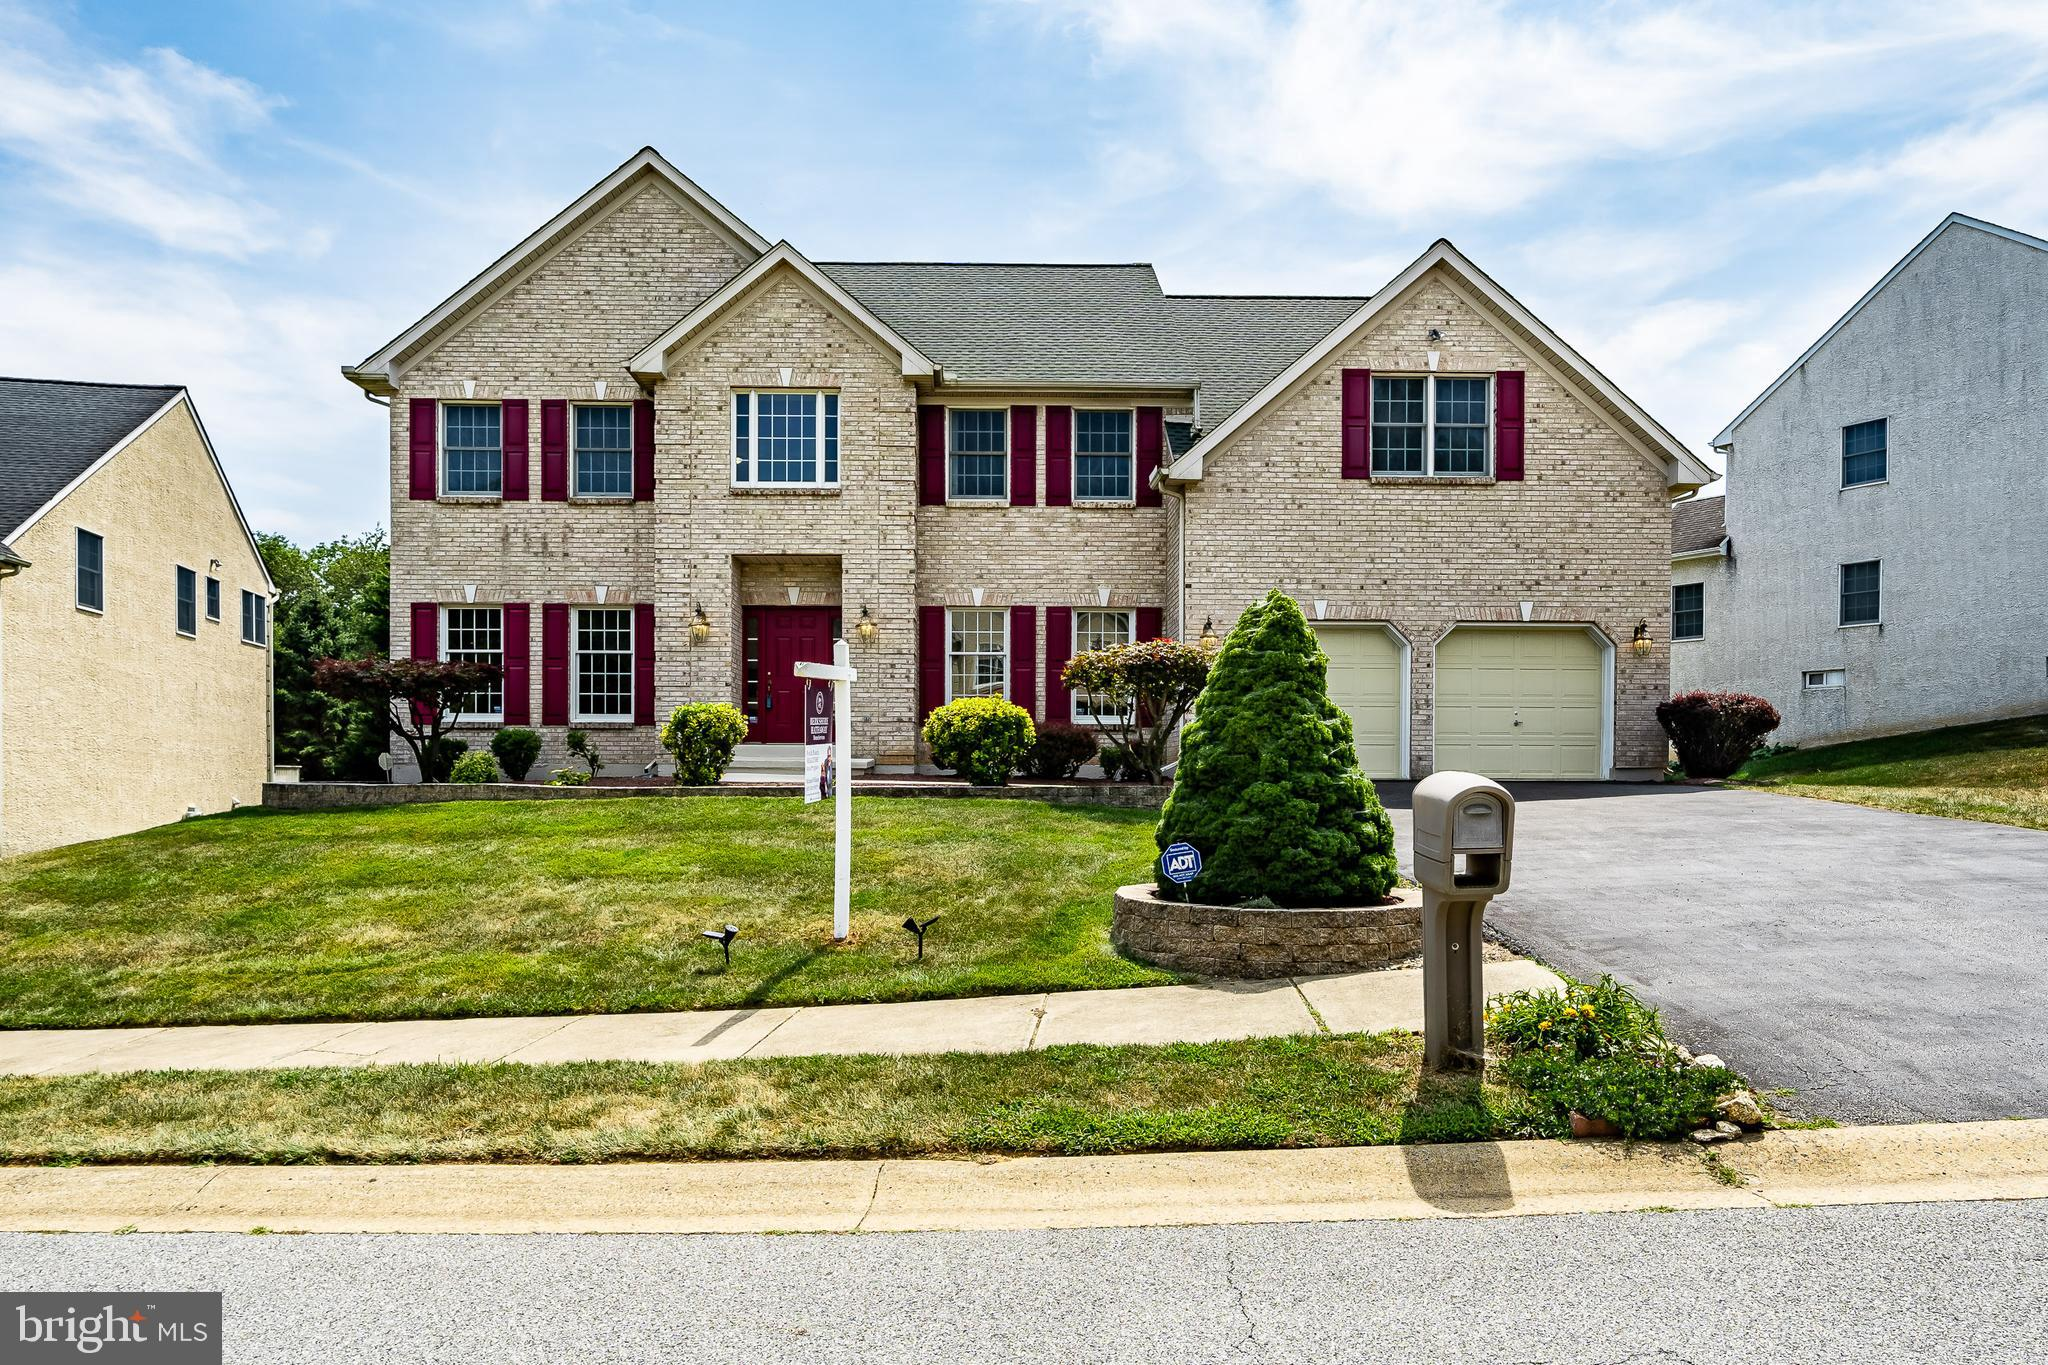 This Hills Of Hockessin original owner home, has been carefully updated and impeccably maintained. RECENT UPDATES; HVAC(6 years),  50 YEAR ROOF(3 Years) WITH TRANSFERABLE WARRANTY,  HOT WATER HEATER(2 years), BRAND NEW KITCHEN APPLIANCES, NEW MASTER SHOWER ROOM(1year).  As you pull up to the front of the home, you will be impressed with the curb appeal, brick front and well manicured landscaping.  Step into the front foyer and fall in love with the hardwood floors, that extend through the entire home. The numerous large windows make this a very bright home. The 2 story foyer, architectural details of columns and arched doorways will immediately impress you.  The formal living and dining rooms flank the front foyer. The family room will provide a cozy space for get-togethers, as everyone enjoys the gas fireplace, floor to ceiling windows and vaulted ceiling. The kitchen is open and adjacent to the family room. The quartz counter tops, 42 inch cabinets, center island, never used stainless steel appliance will satisfy the most experienced cook.  The nearby breakfast nook provides a nice place for meals, with the slider access to the rear deck just nearby. Enjoy the view of the open space and rear pond from your deck. When it is time to travel to the 2nd level, choose from either the front or back staircase, but don't miss the overhead views of the front foyer, catwalk or the view of the family room, The owner's suite is the center piece of the upper level. As you pass through the double door entrance, you will find a generous sized sleeping area and separate sitting area.  The sumptuous master bath presents a double vanity, soaking tub, updated shower and commode area.  The 2 oversized walk-in closets will eliminate any discussion regarding closet space.  The well sized additional 3 bedrooms and 2nd full hall bath, completes the 2nd level. The walk out lower level could add significant living space to the home. The 2 car attached garage will certainly come in handy. Th